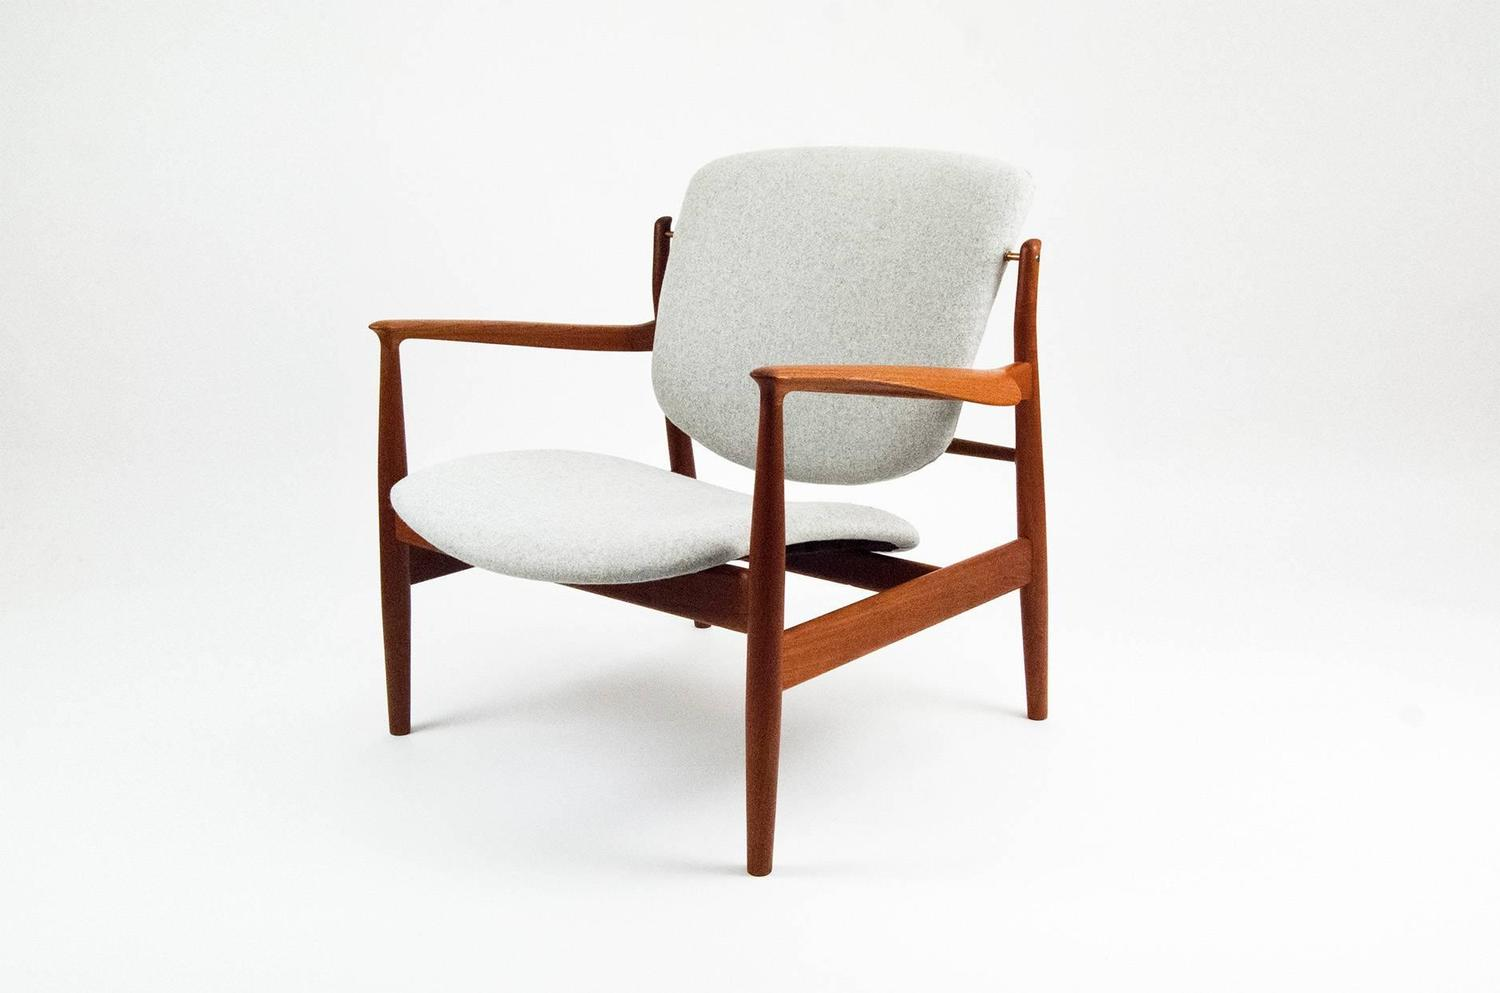 finn juhl 136 chair at 1stdibs. Black Bedroom Furniture Sets. Home Design Ideas